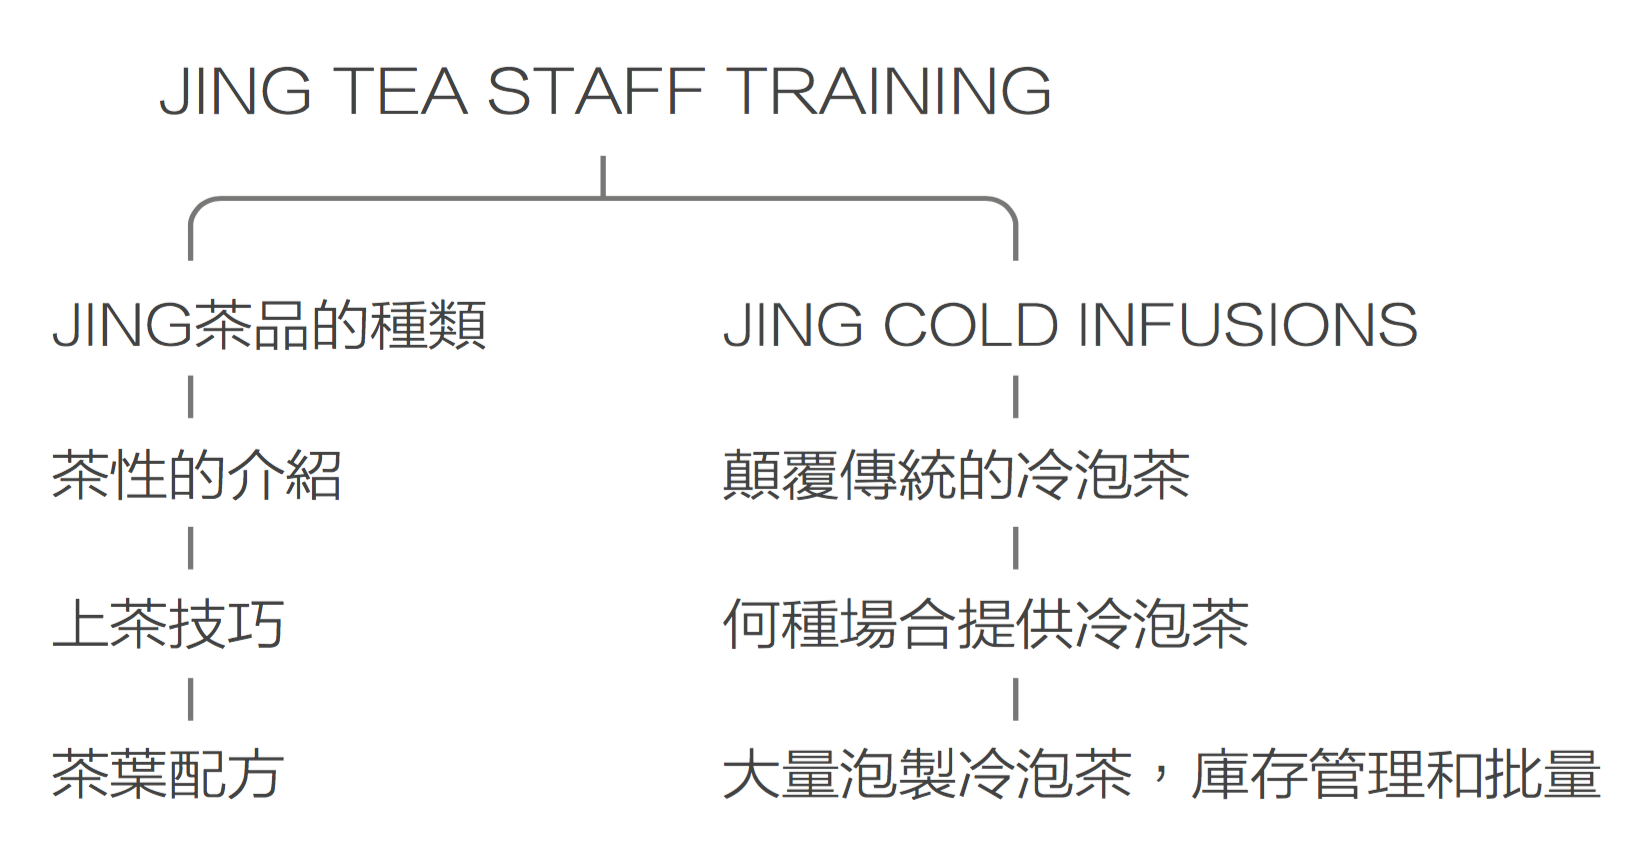 JING TEA STAFF TRAINING